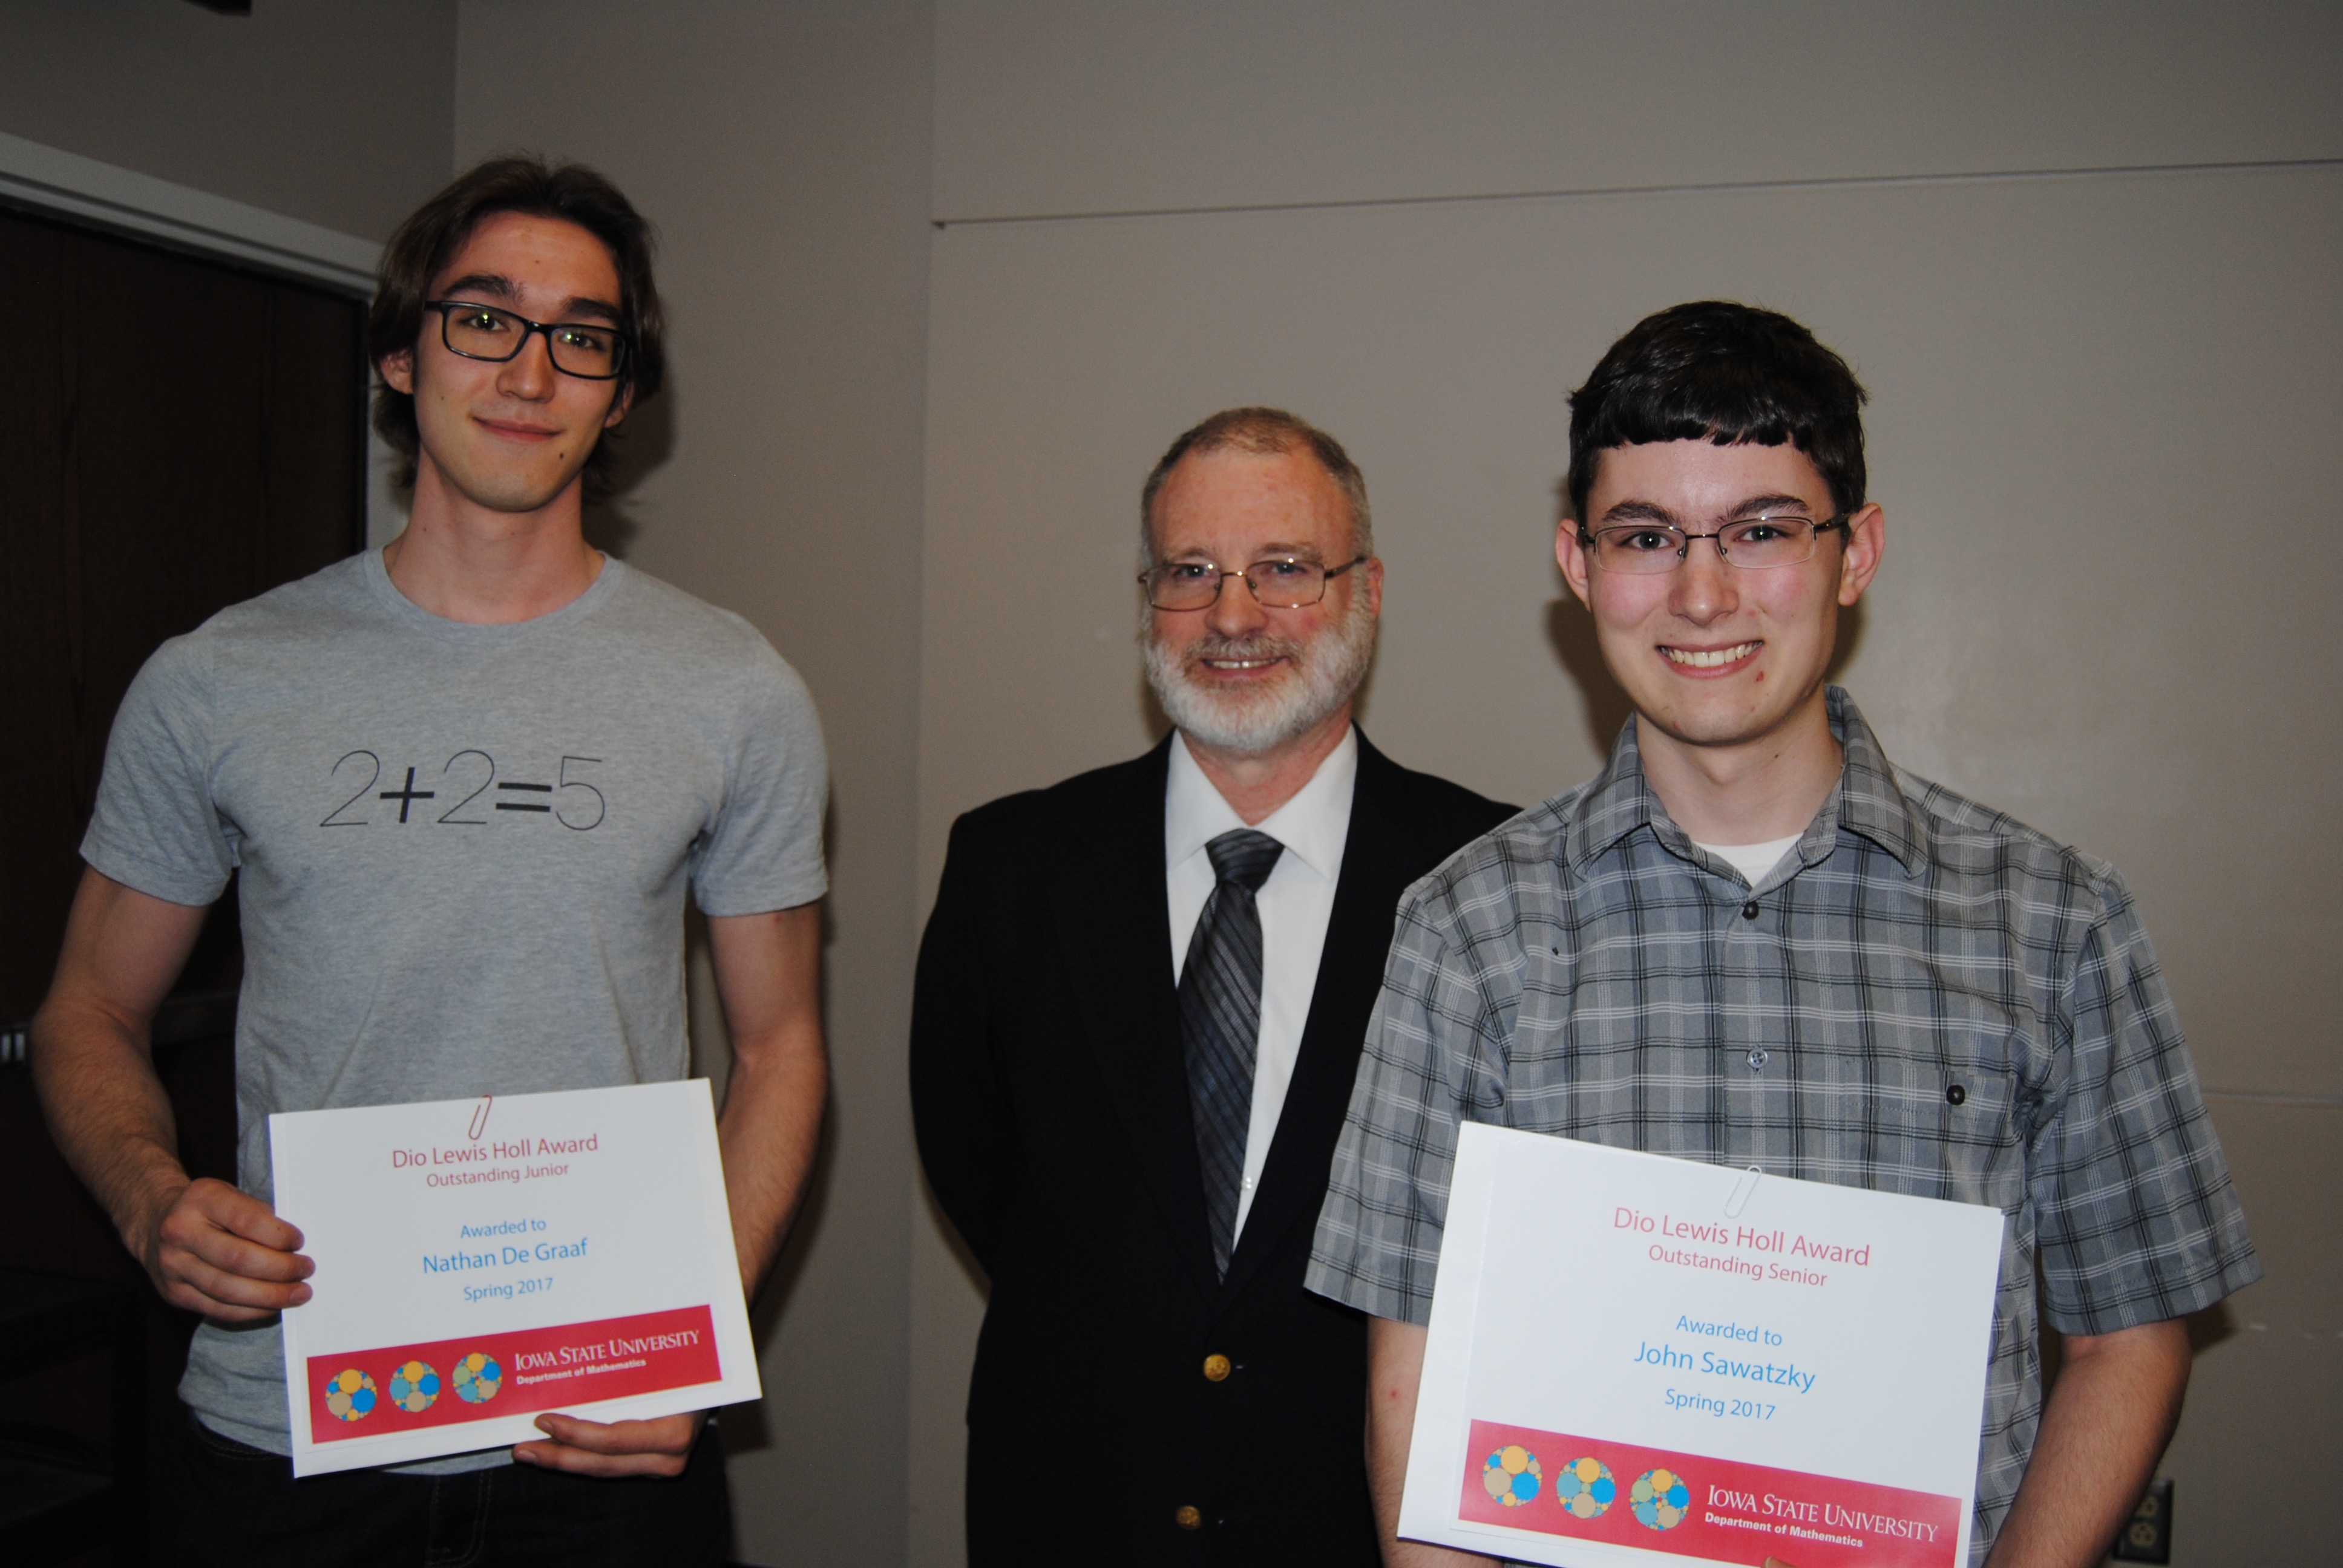 James Wilson, director of undergraduate education presents students Nathan De Graaf and John Sawatzky with Dio Lewis Holl Awards.